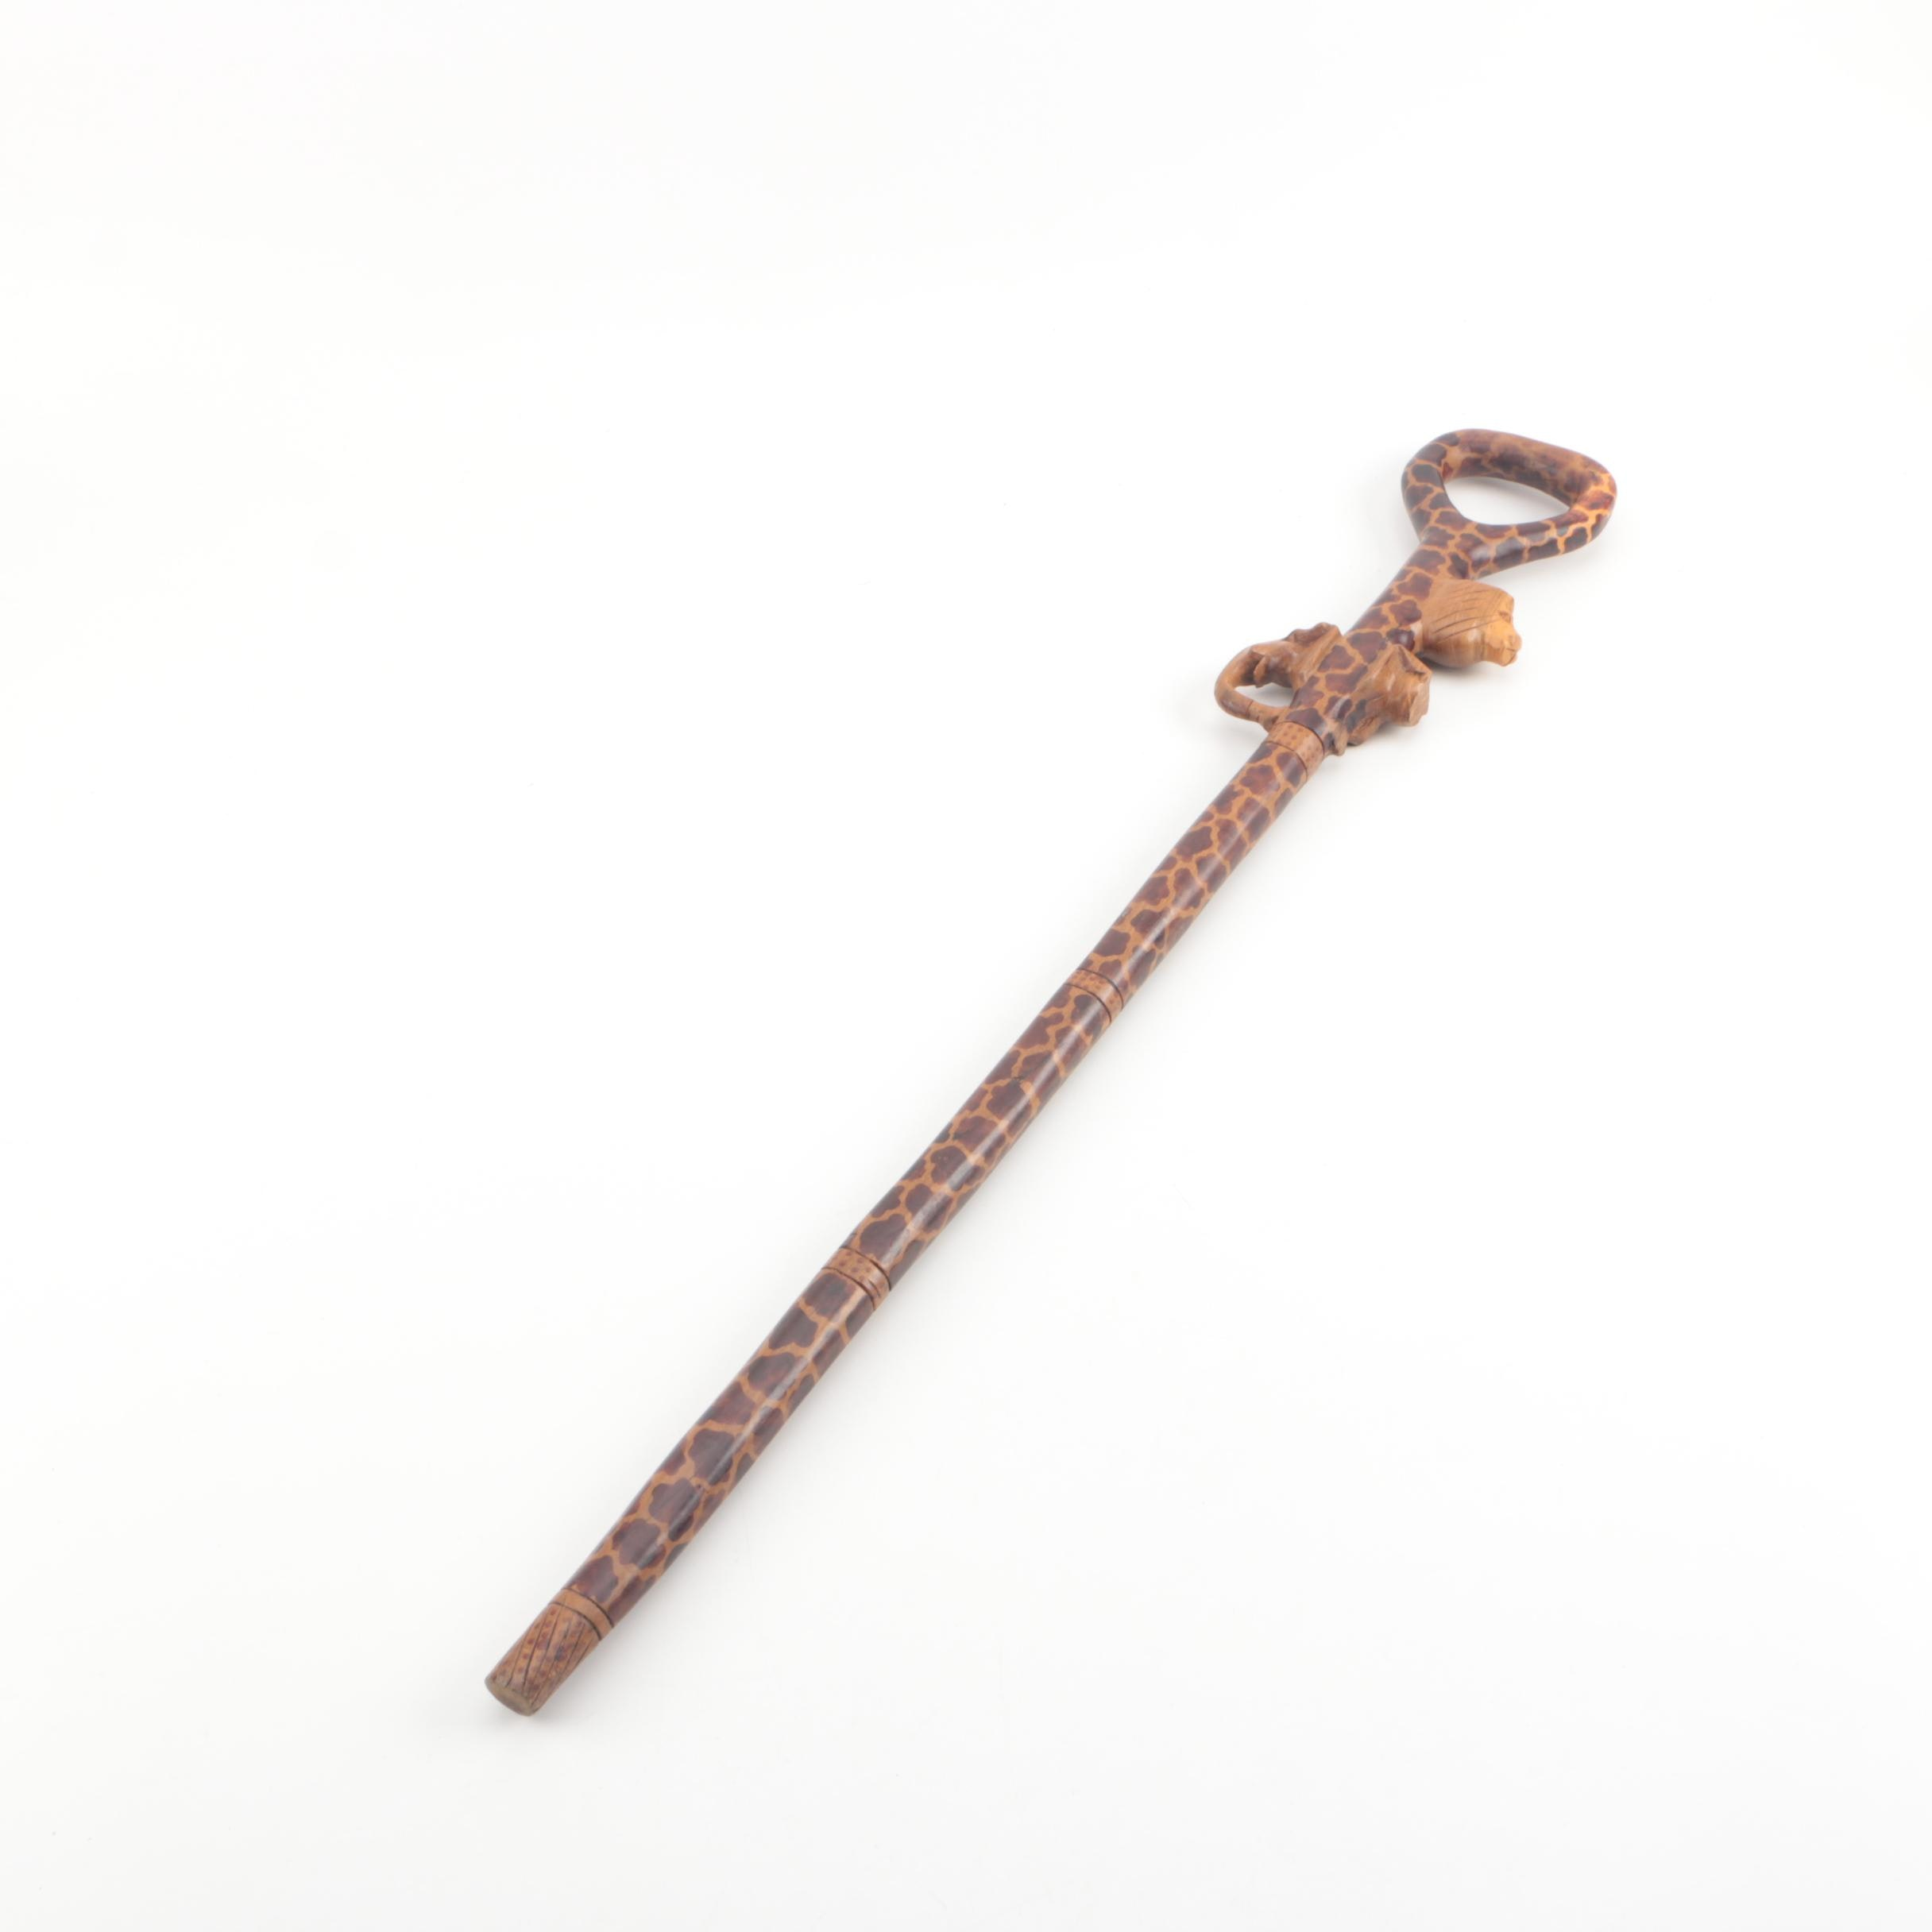 Carved African Themed Wooden Cane with Figural Handle Grip